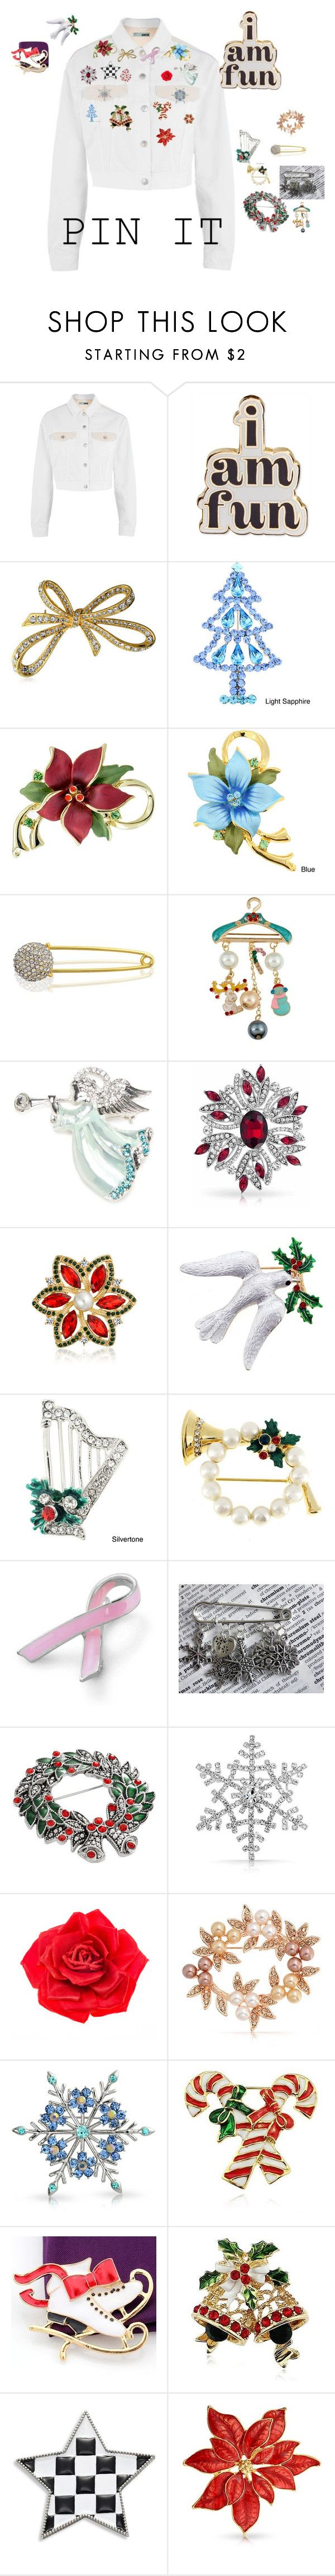 """""""was bored"""" by anime-rebble ❤ liked on Polyvore featuring Topshop, ban.do, Bling Jewelry, Napier, Johnny Loves Rosie, Marc Jacobs, 16 Braunton and pins"""